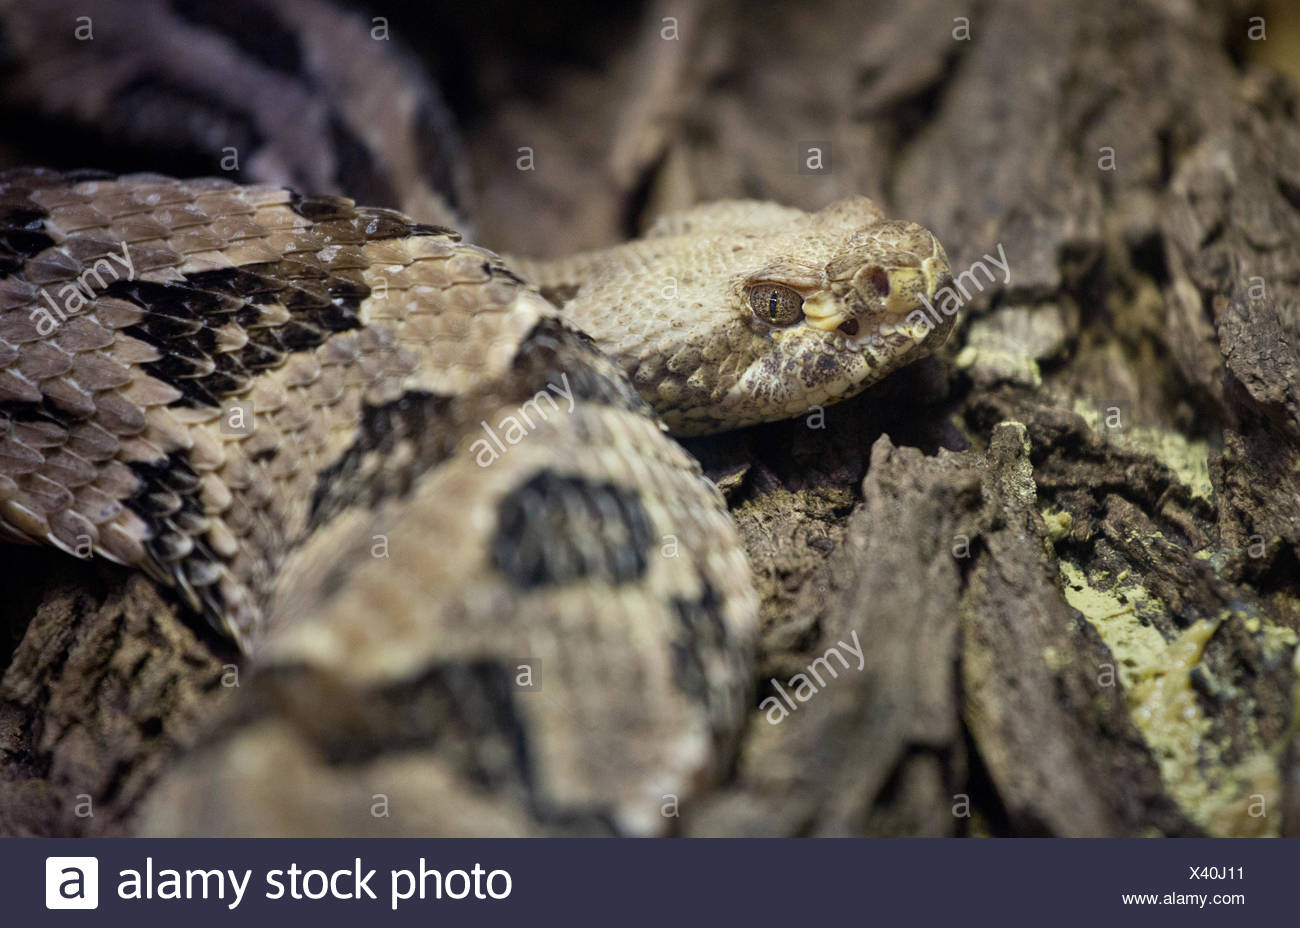 Dangerous Snake Stock Photos & Dangerous Snake Stock Images